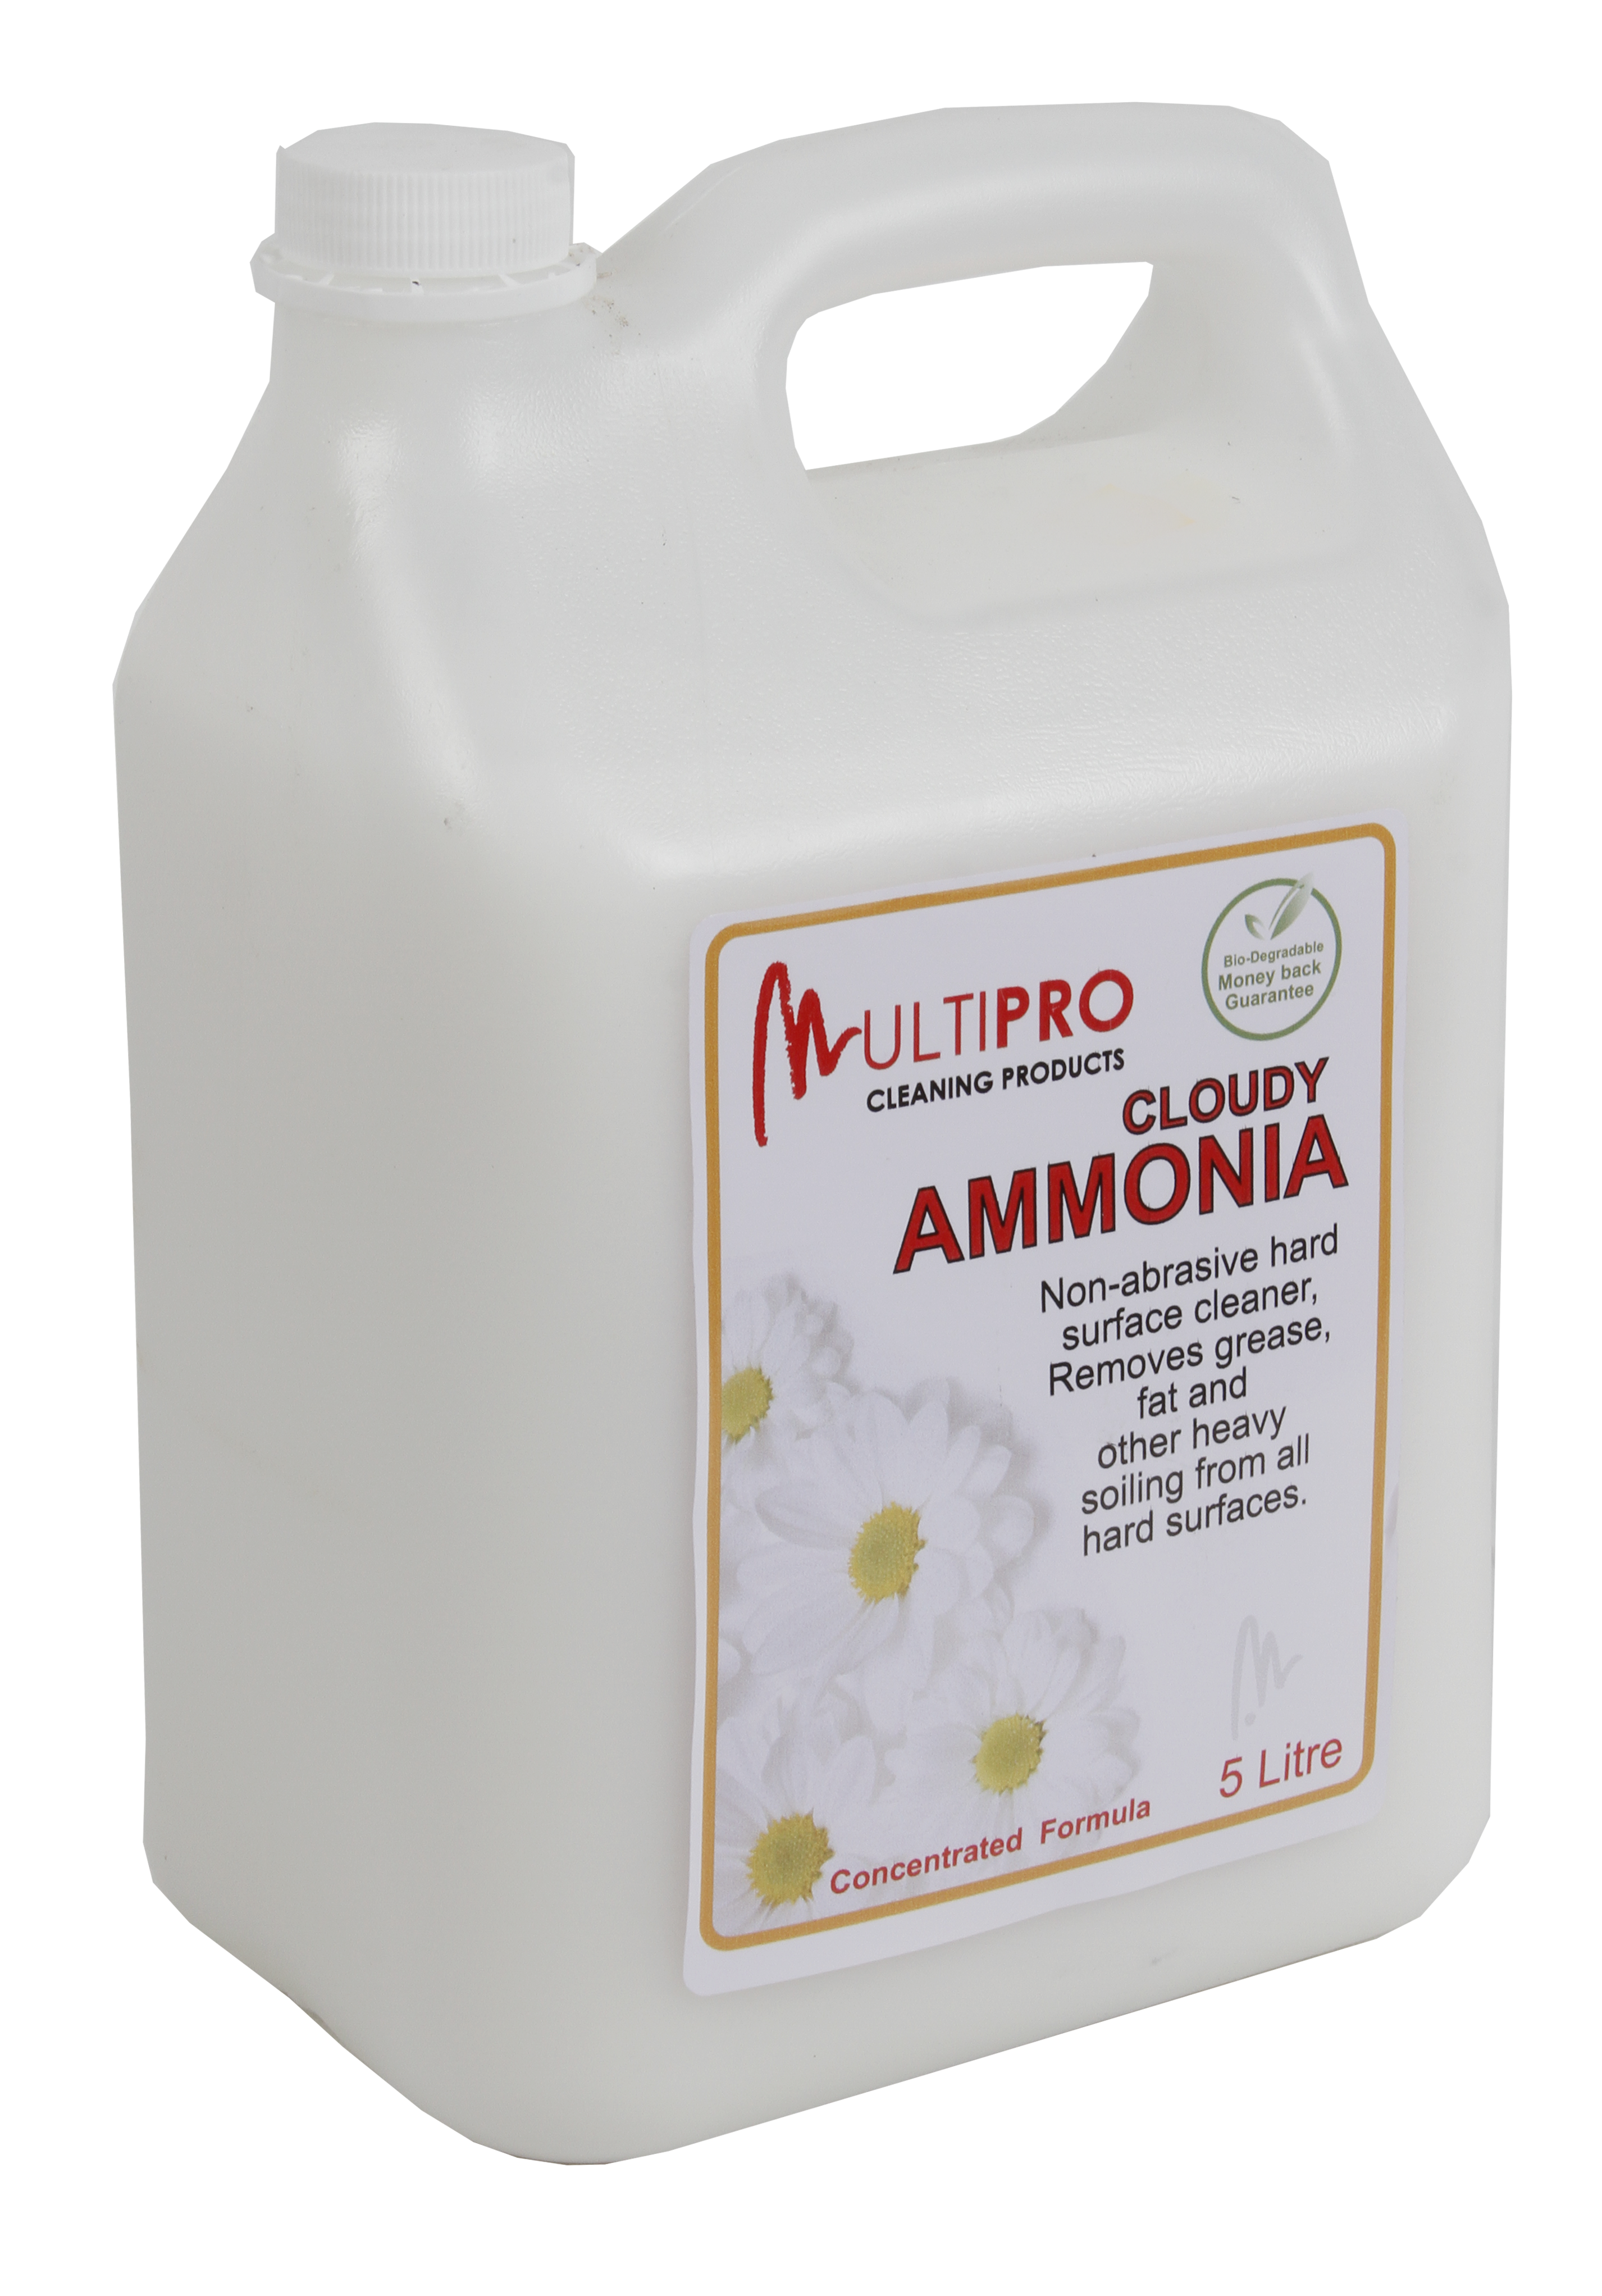 MULTIPRO CLOUDY AMMONIA 5L